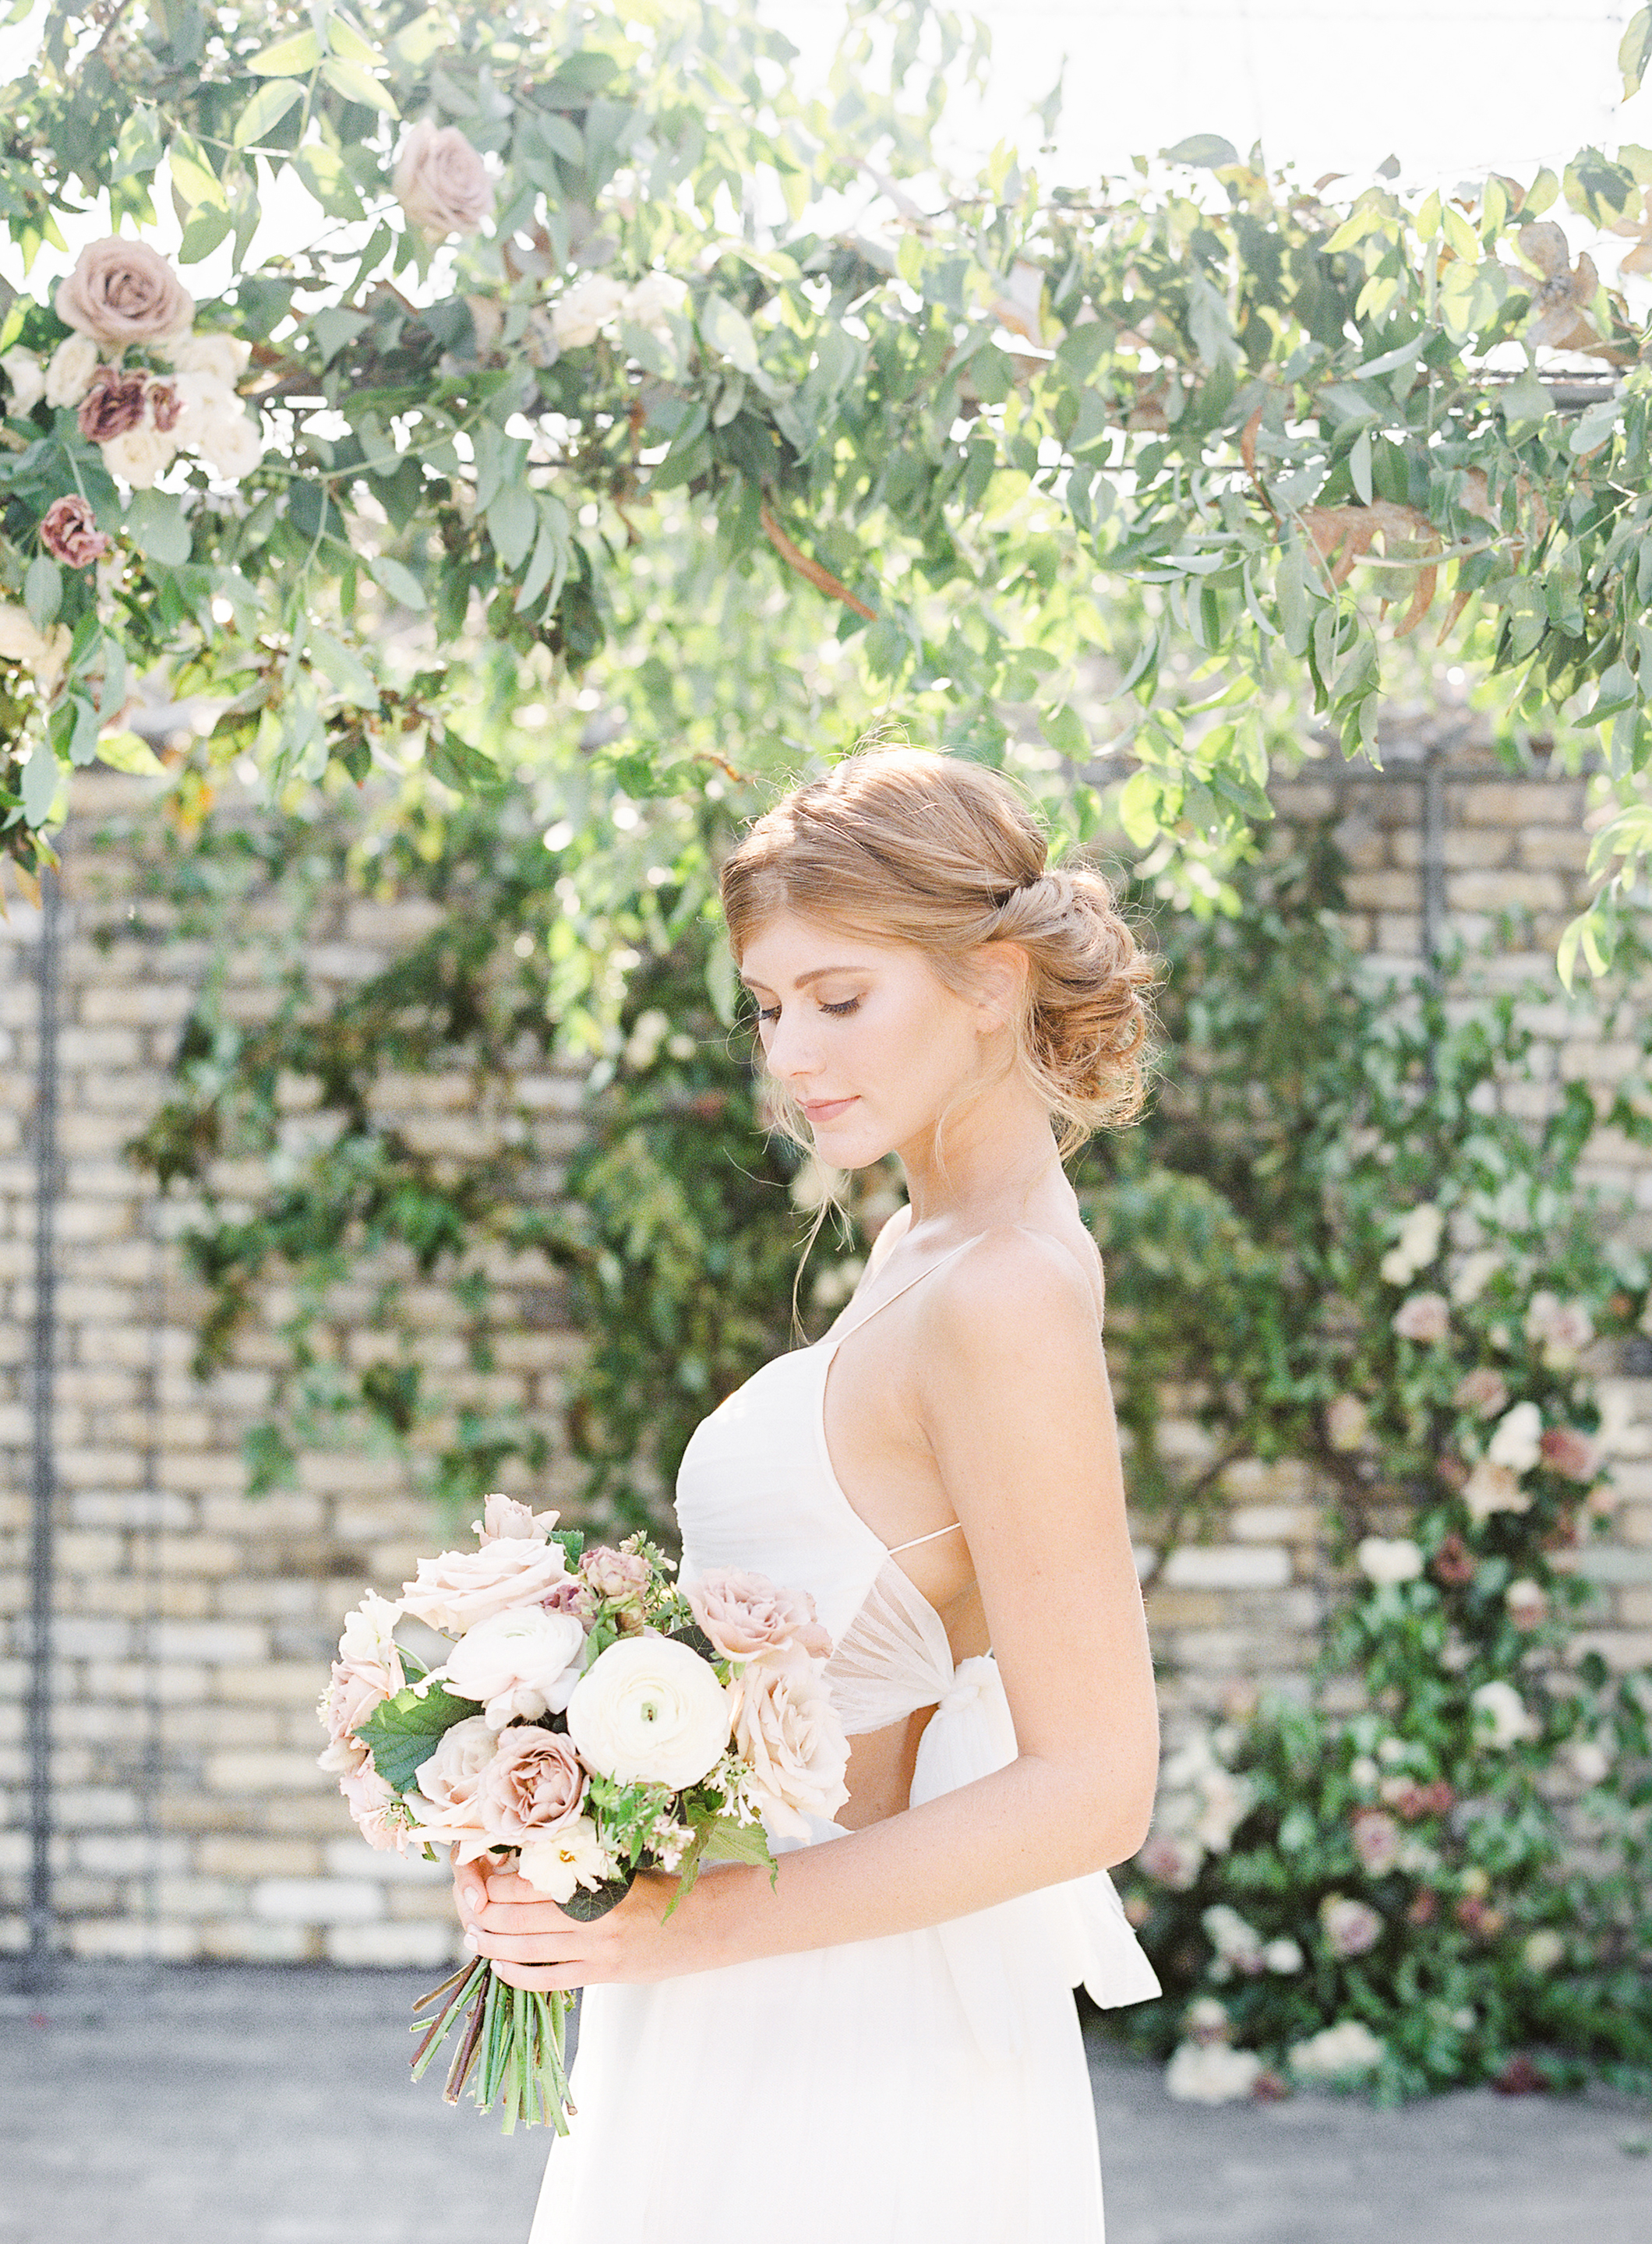 photography: Maria Mack // planning & design: Arielle Fera Events // hair & makeup: Hayley Jeanne